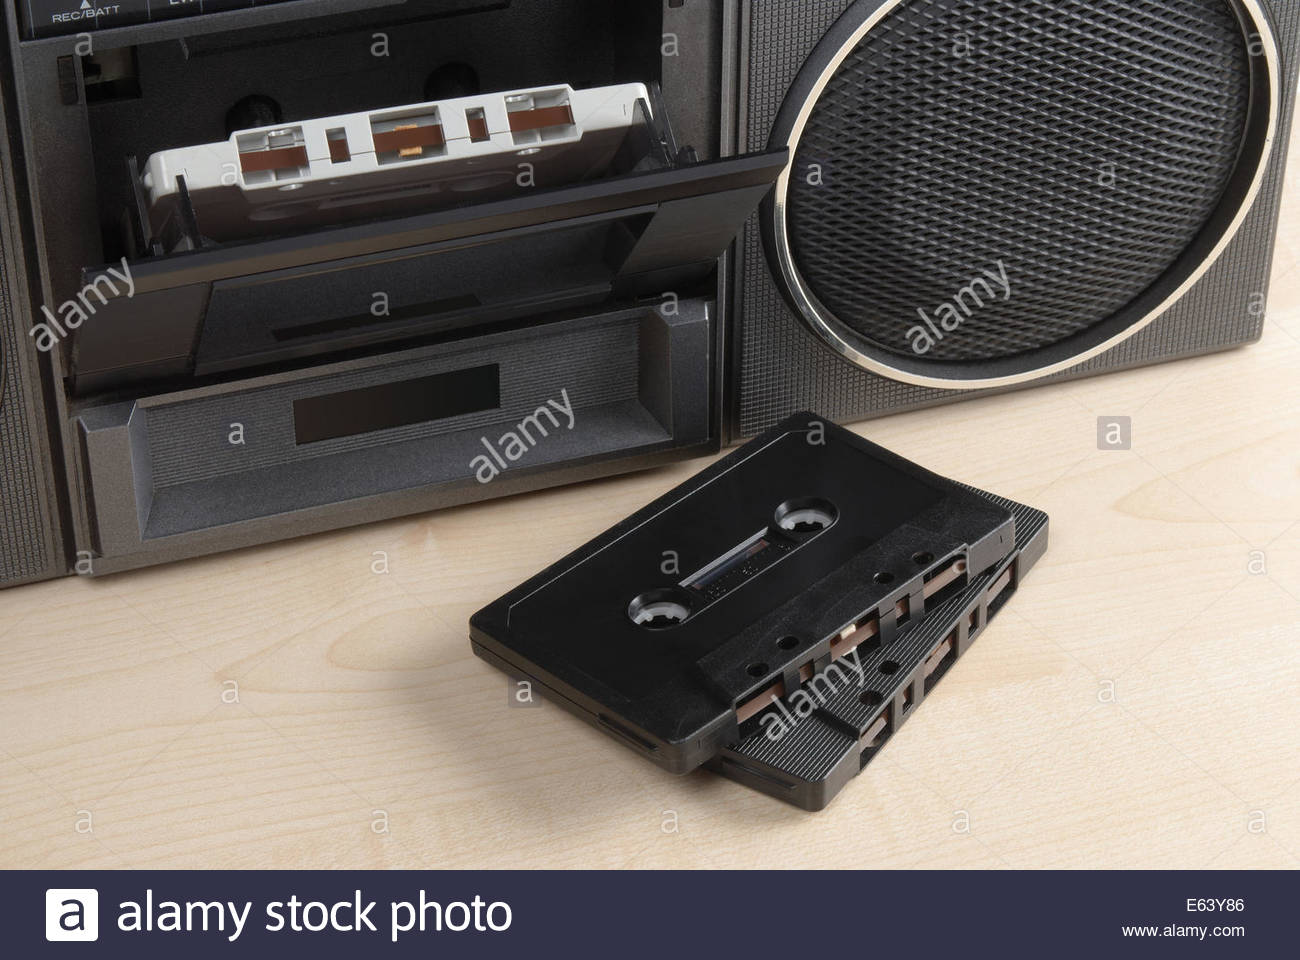 Closeup of an old radio cassette player with two cassettes in front - Stock Image